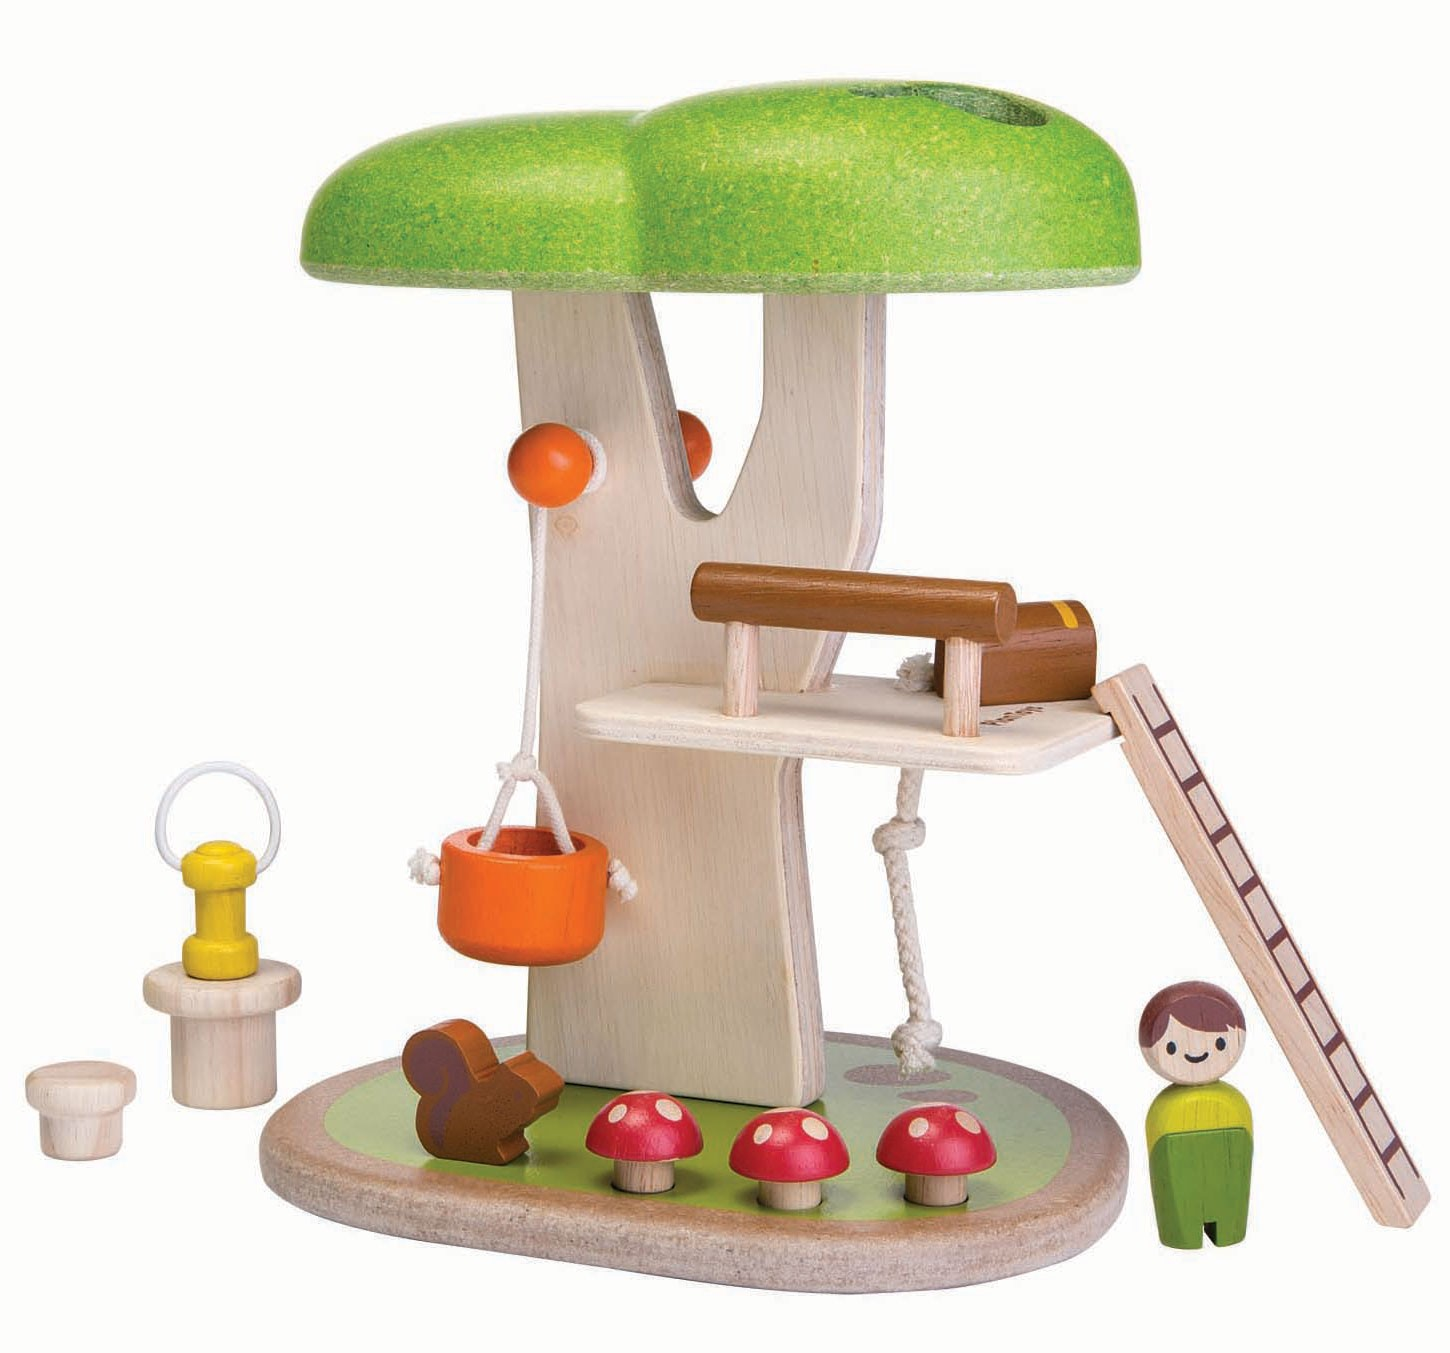 Wooden Toy Plans Catalog : Plan toys tree house planworld